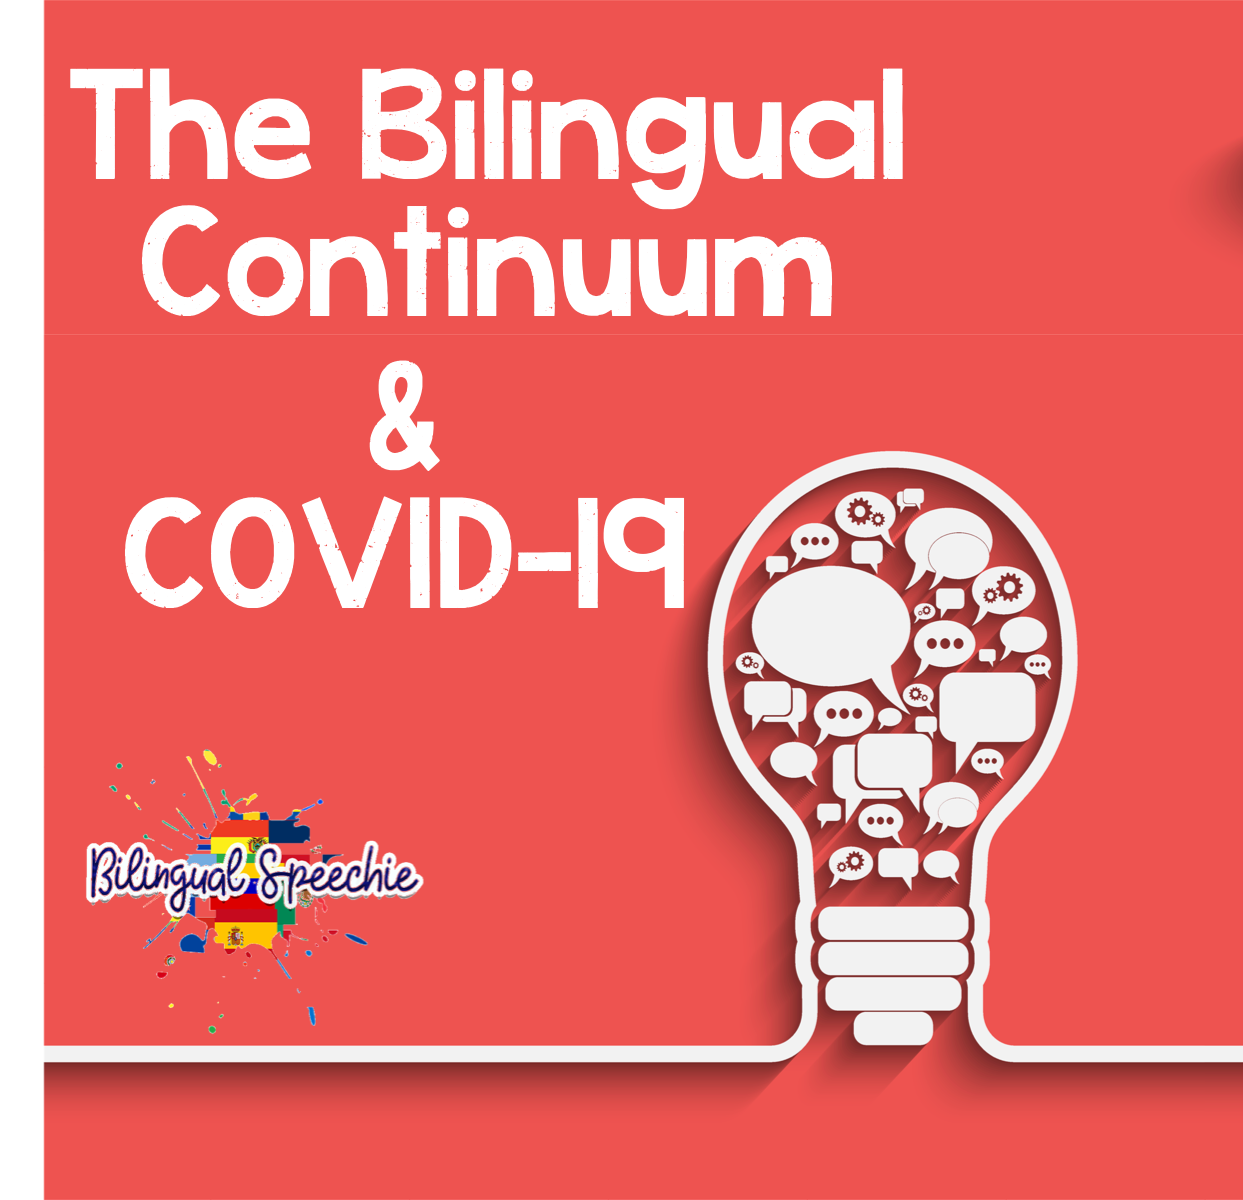 The Bilingual Continuum During Times of COVID-19